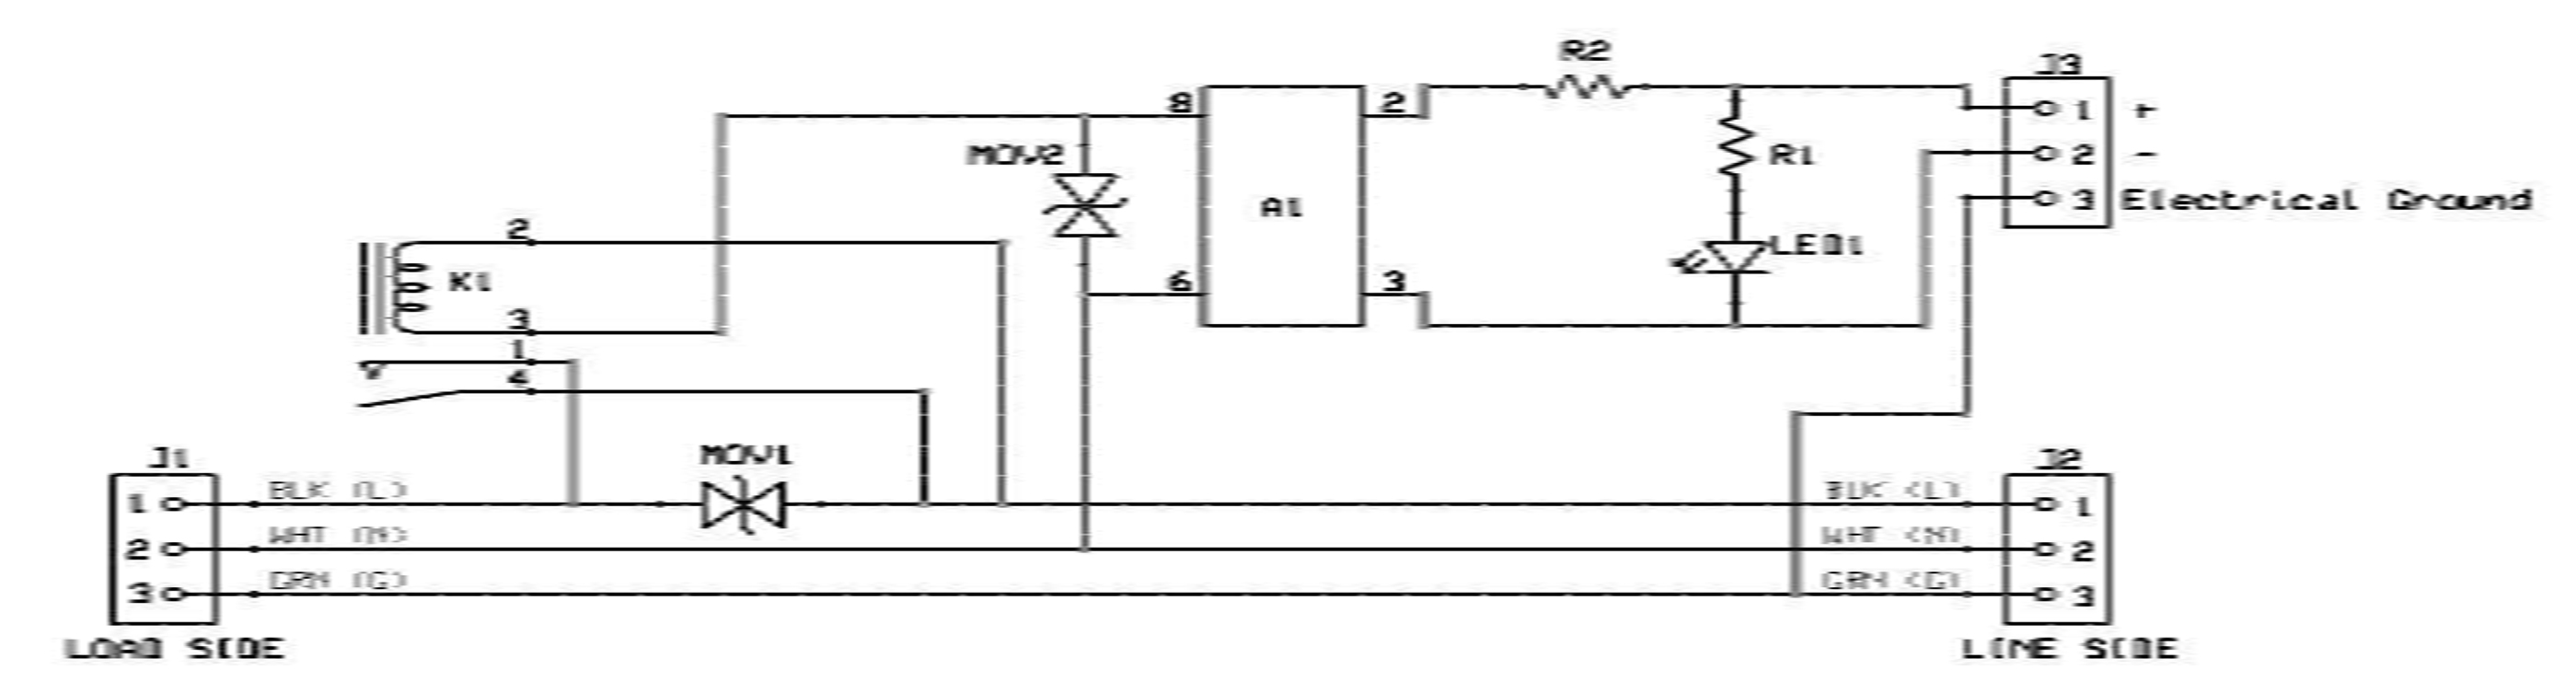 Drivers Relays And Solid State Mbed Vfd Circuit Diagram To Voltage Before Is Purpose Power Switch Tail Ii Schematic